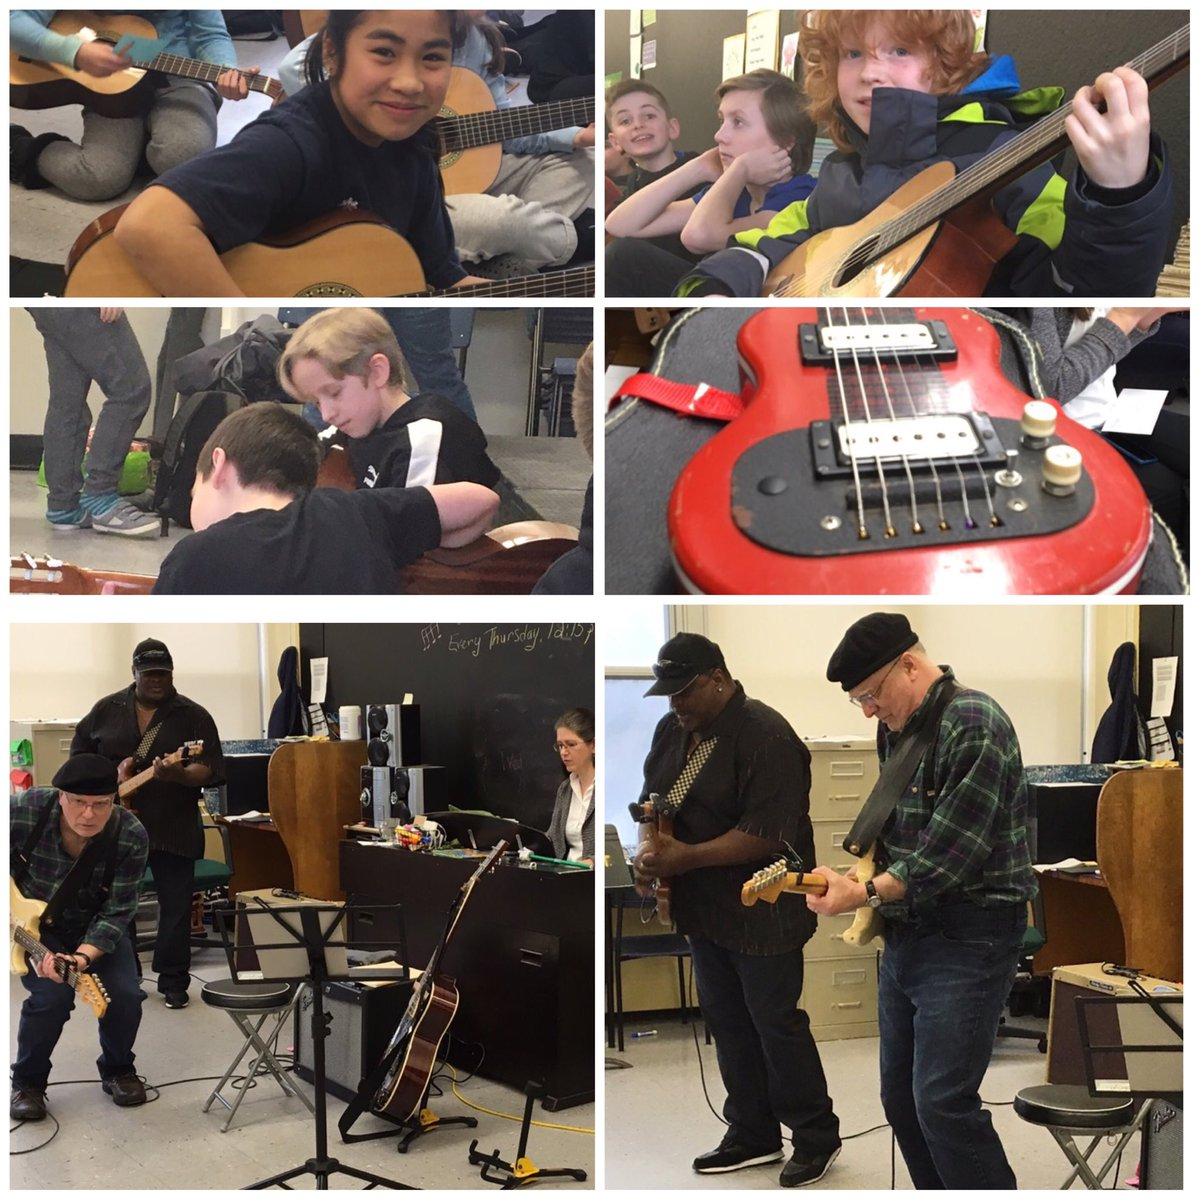 Gr. 6 Fader students practice their new guitar skills after an inspiring visit from @Carson_Downey and John Campbelljohn, who taught us about the incredible contribution that African culture has made to modern music of all styles.